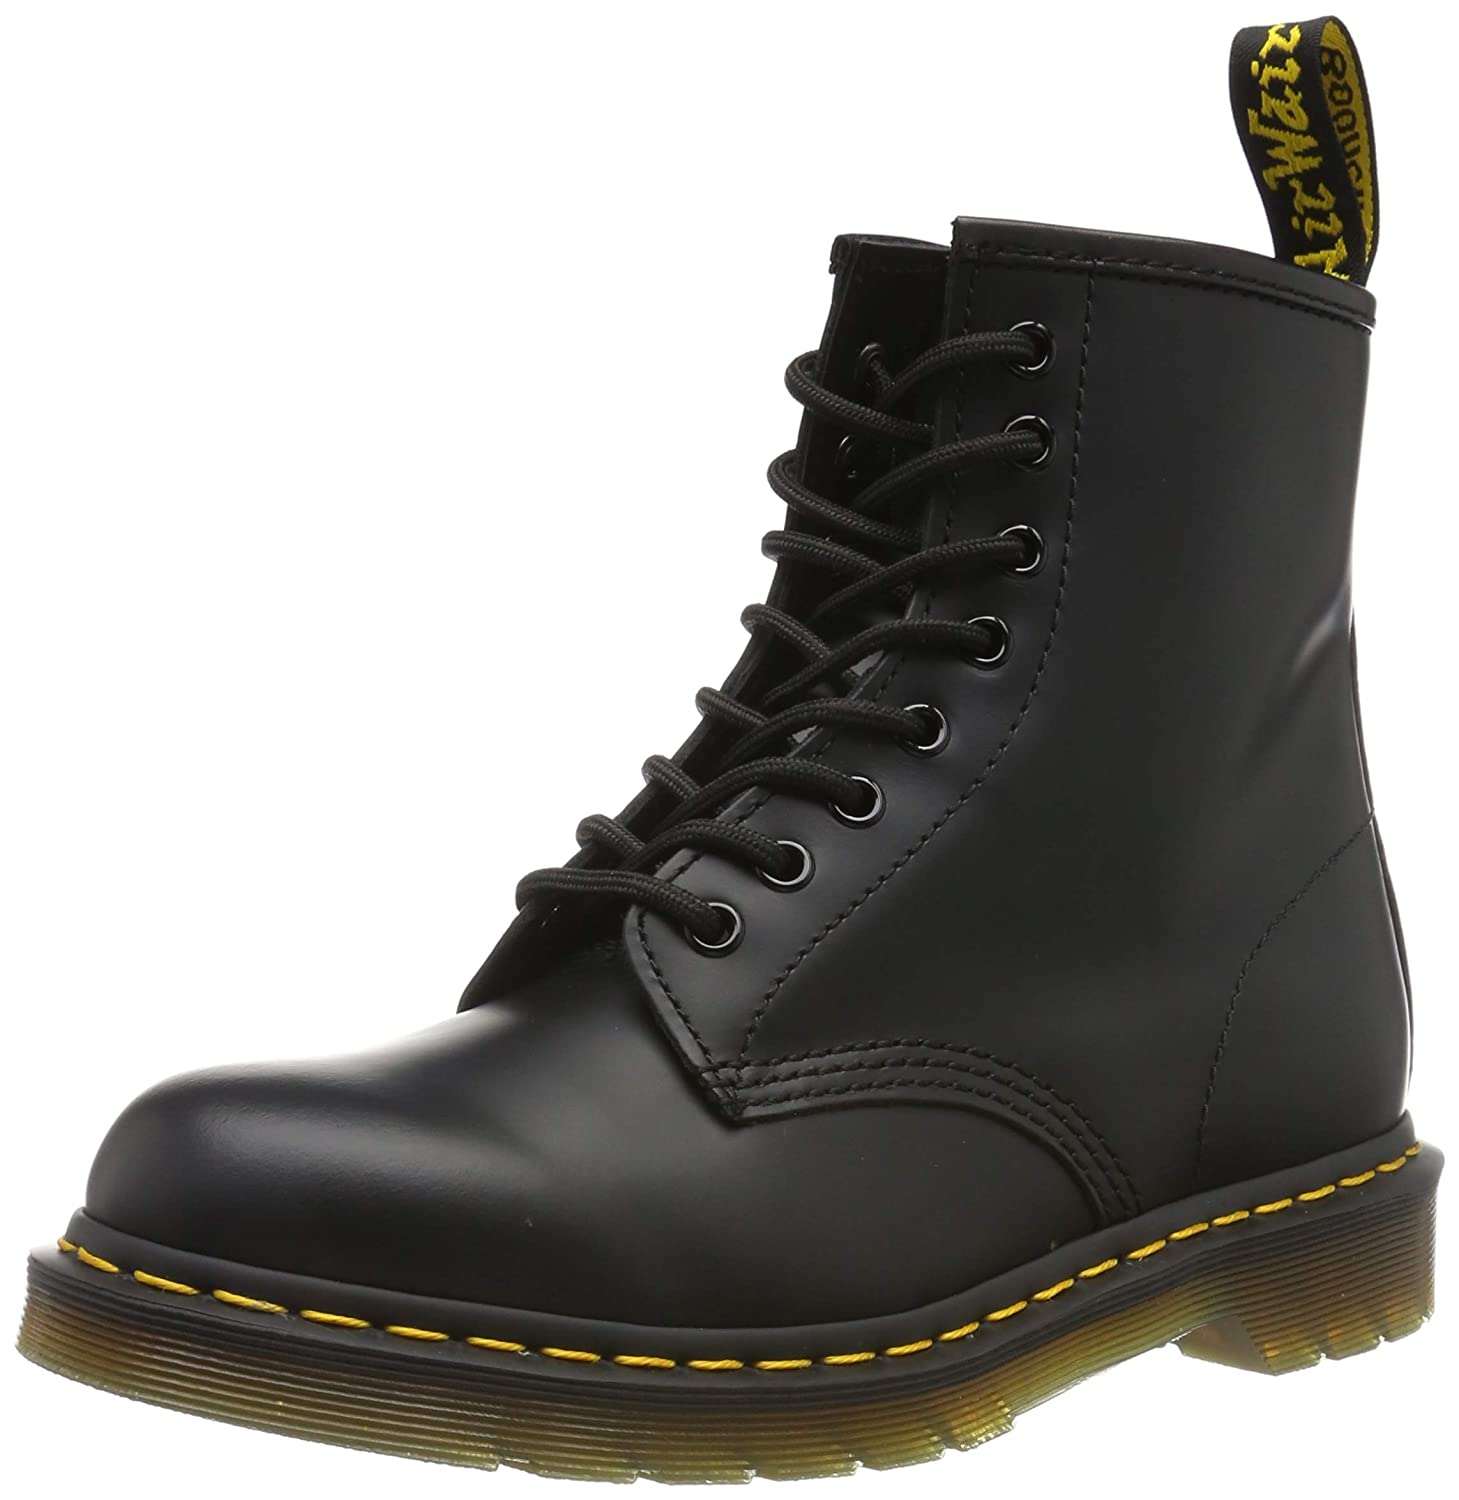 2ed0446da81f Dr. Martens 1460 Original, Unisex Adults' Boots: Amazon.co.uk: Shoes & Bags